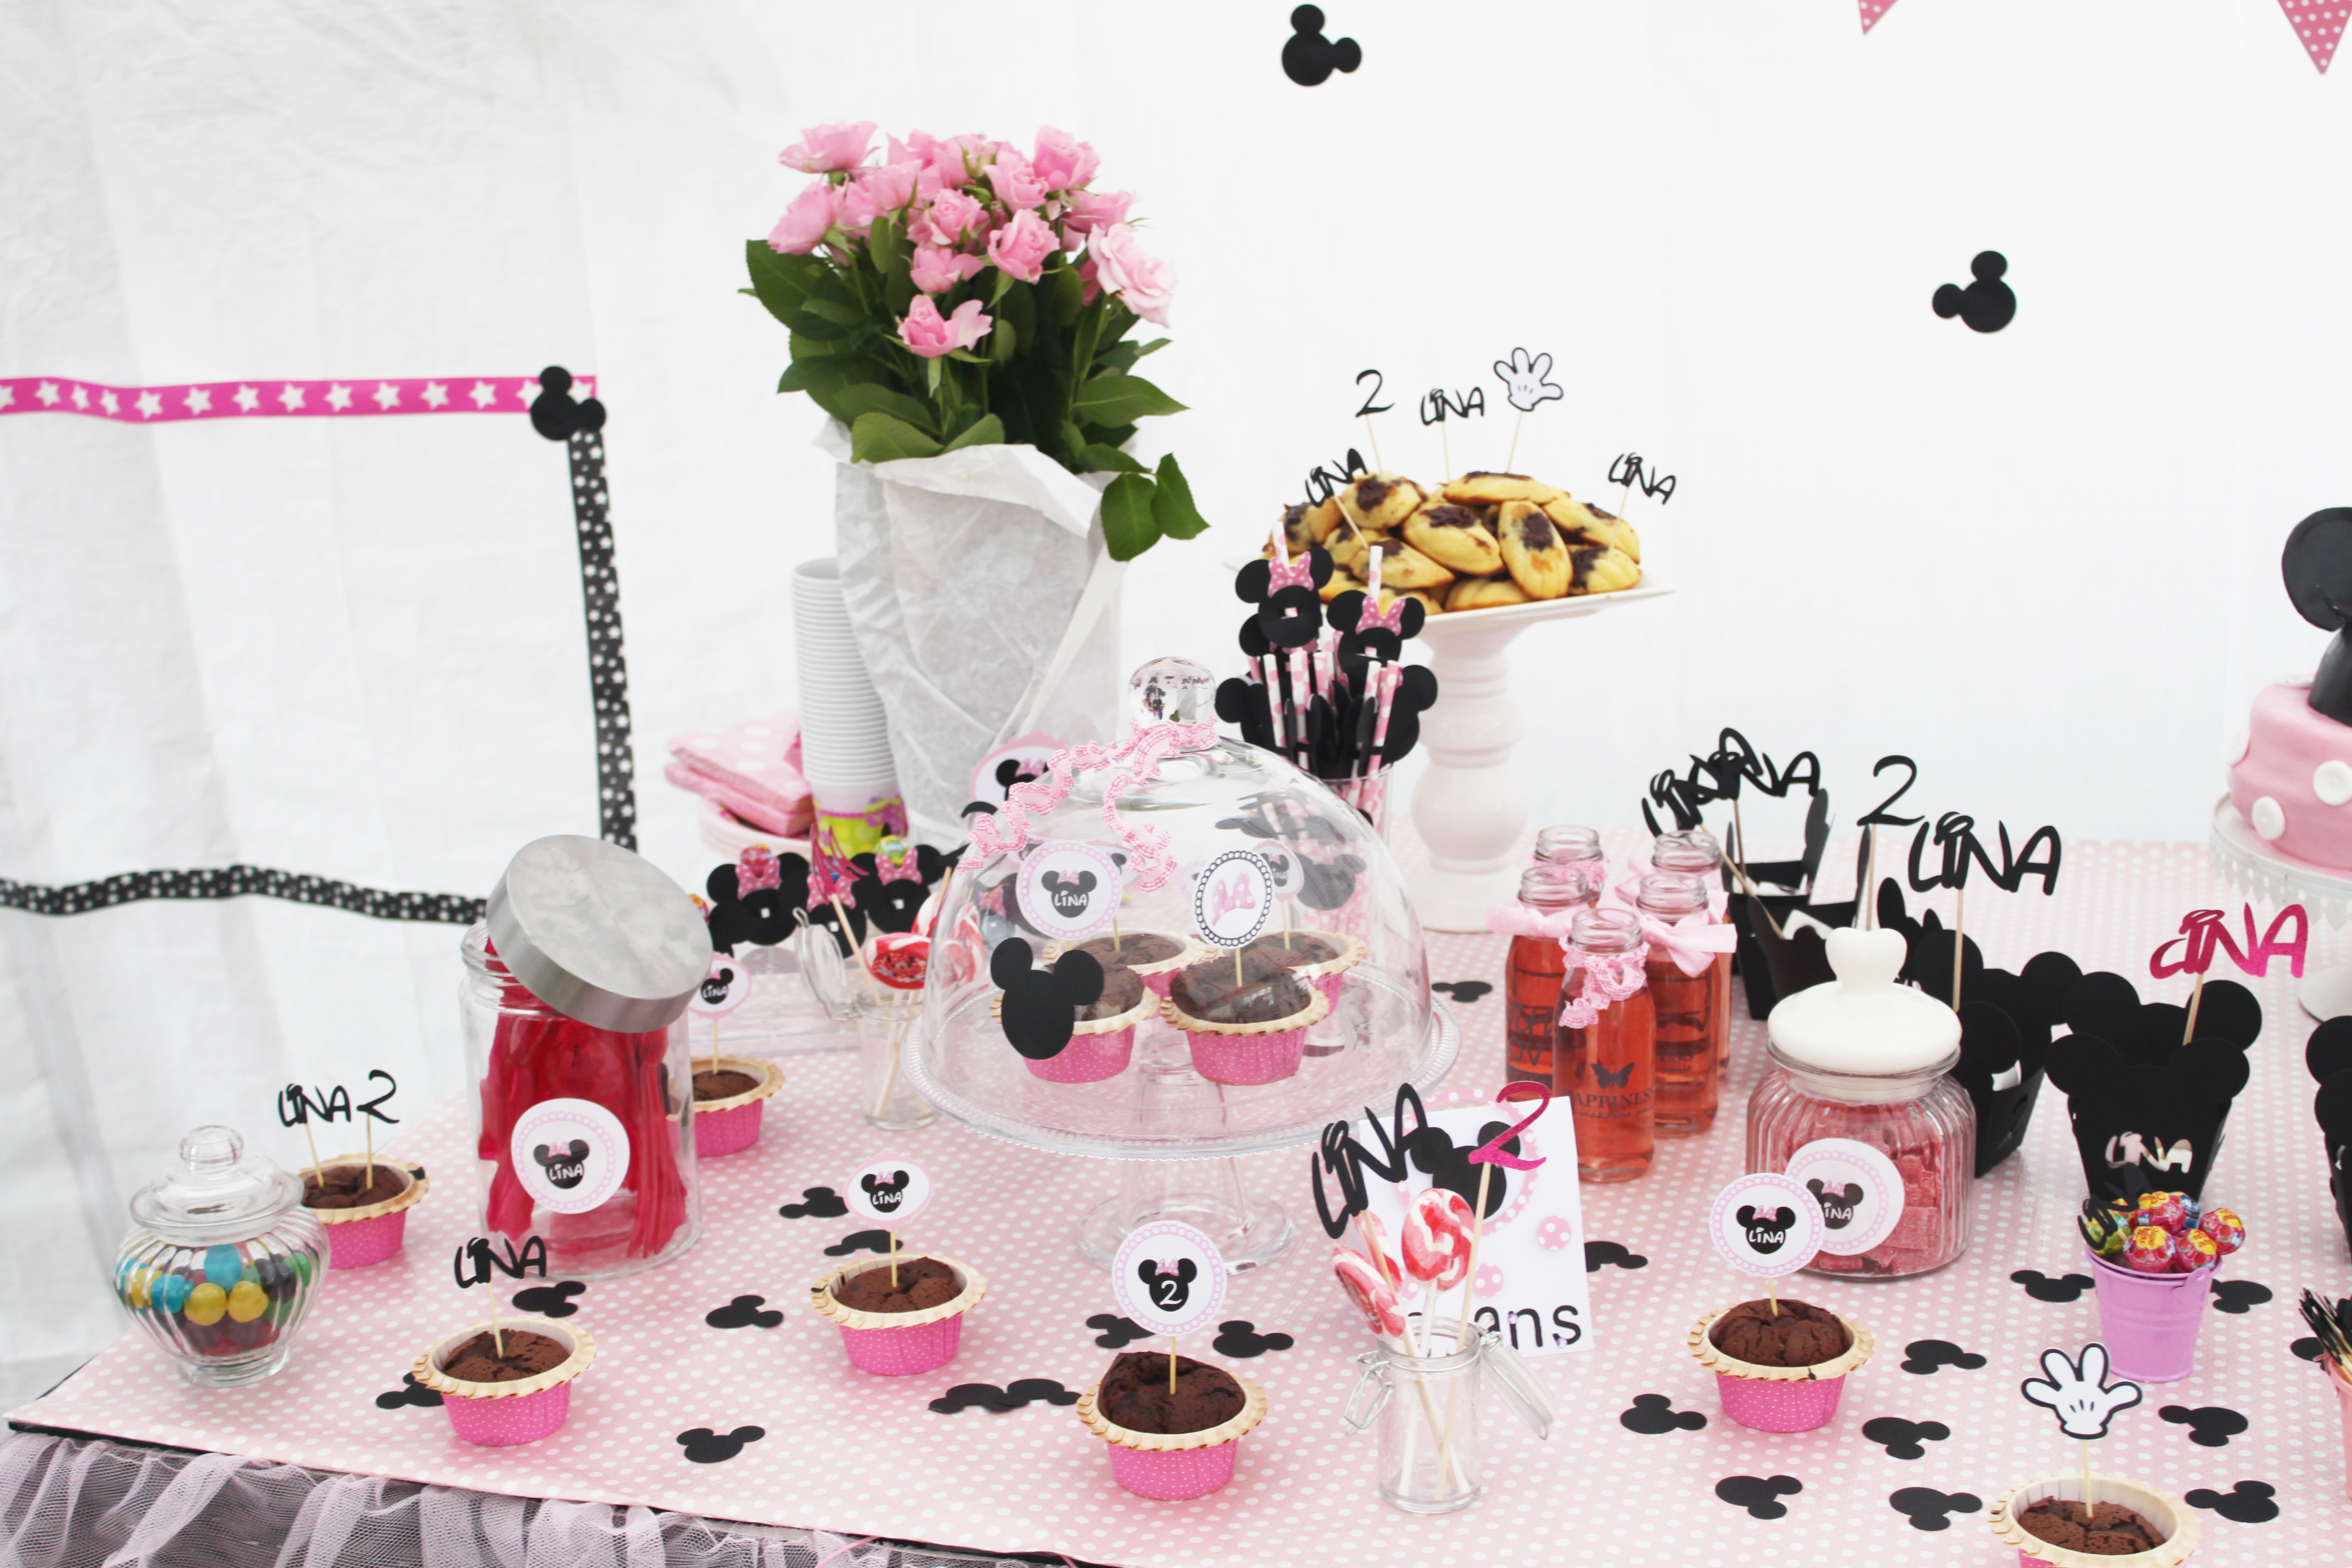 un candybar sur le th me de minnie f te anniversaire de lina de 2 ans la fabricamania. Black Bedroom Furniture Sets. Home Design Ideas